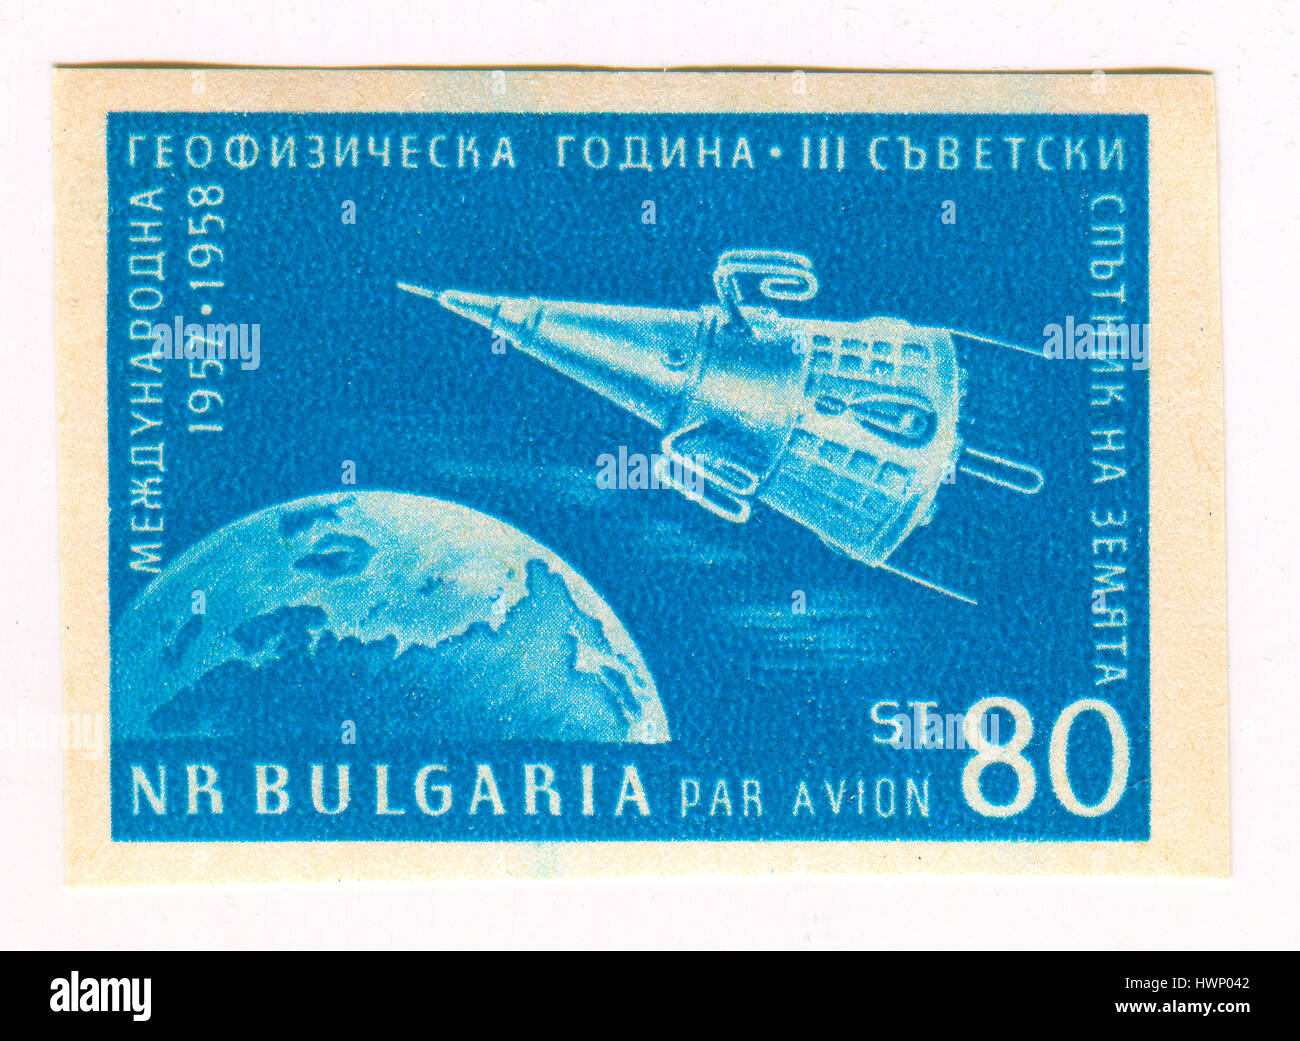 GOMEL, BELARUS, 22 MARCH 2017, Stamp printed in Bulgaria shows image of the Sputnik 3 was a Soviet satellite launched - Stock Image